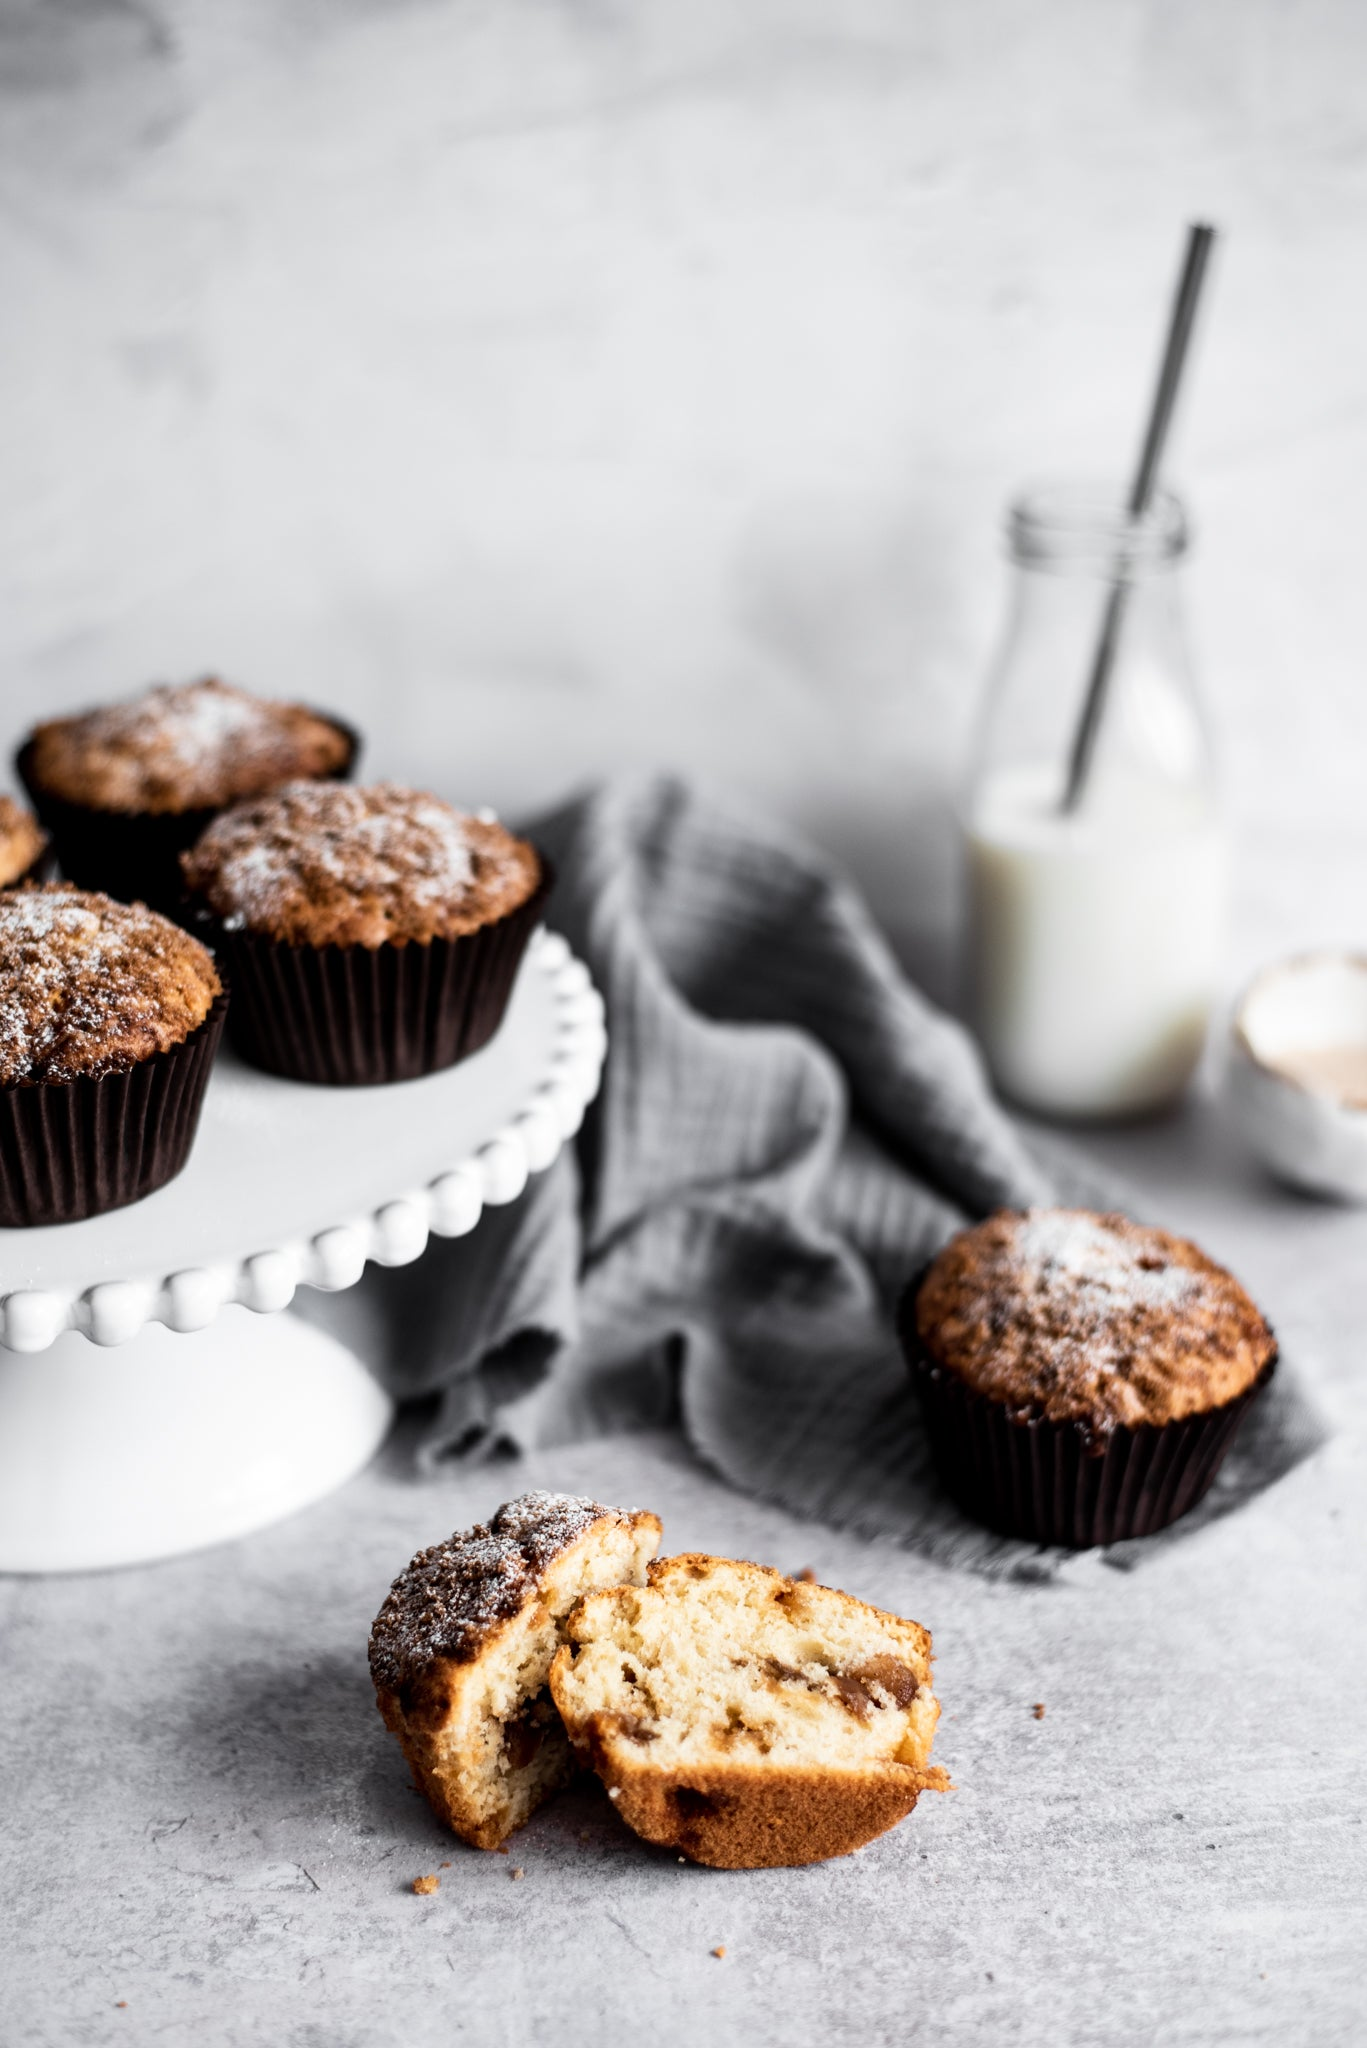 Toffee-And-Apple-Sauce-Muffins-WEB-RES-2.jpg